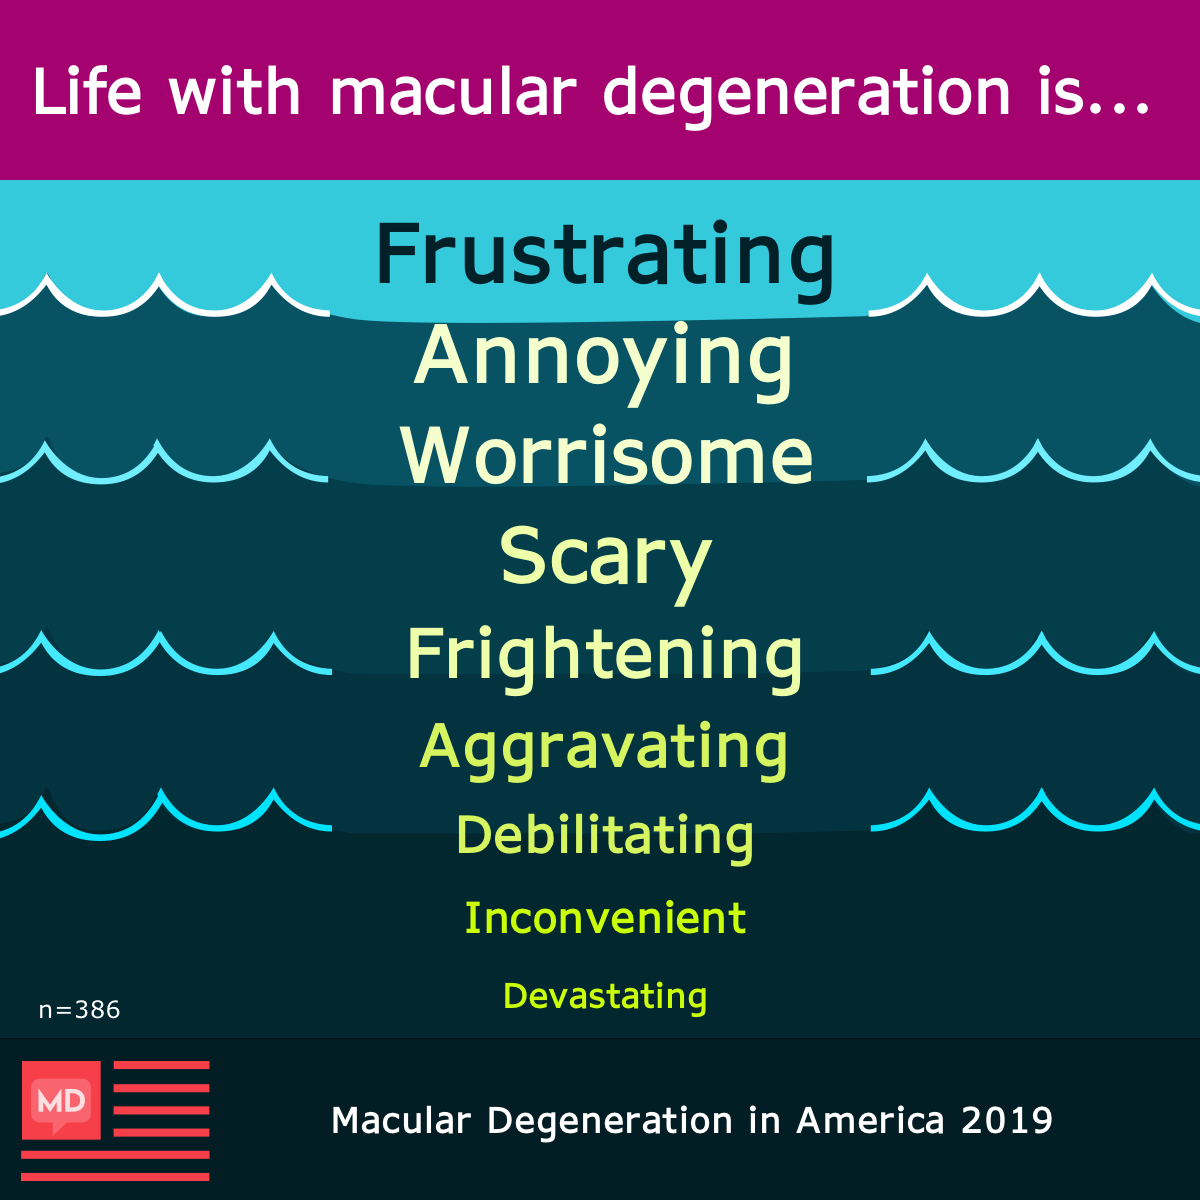 Respondents said life with macular degeneration is frustrating, annoying, worrisome, scary, frightening, and aggravating.